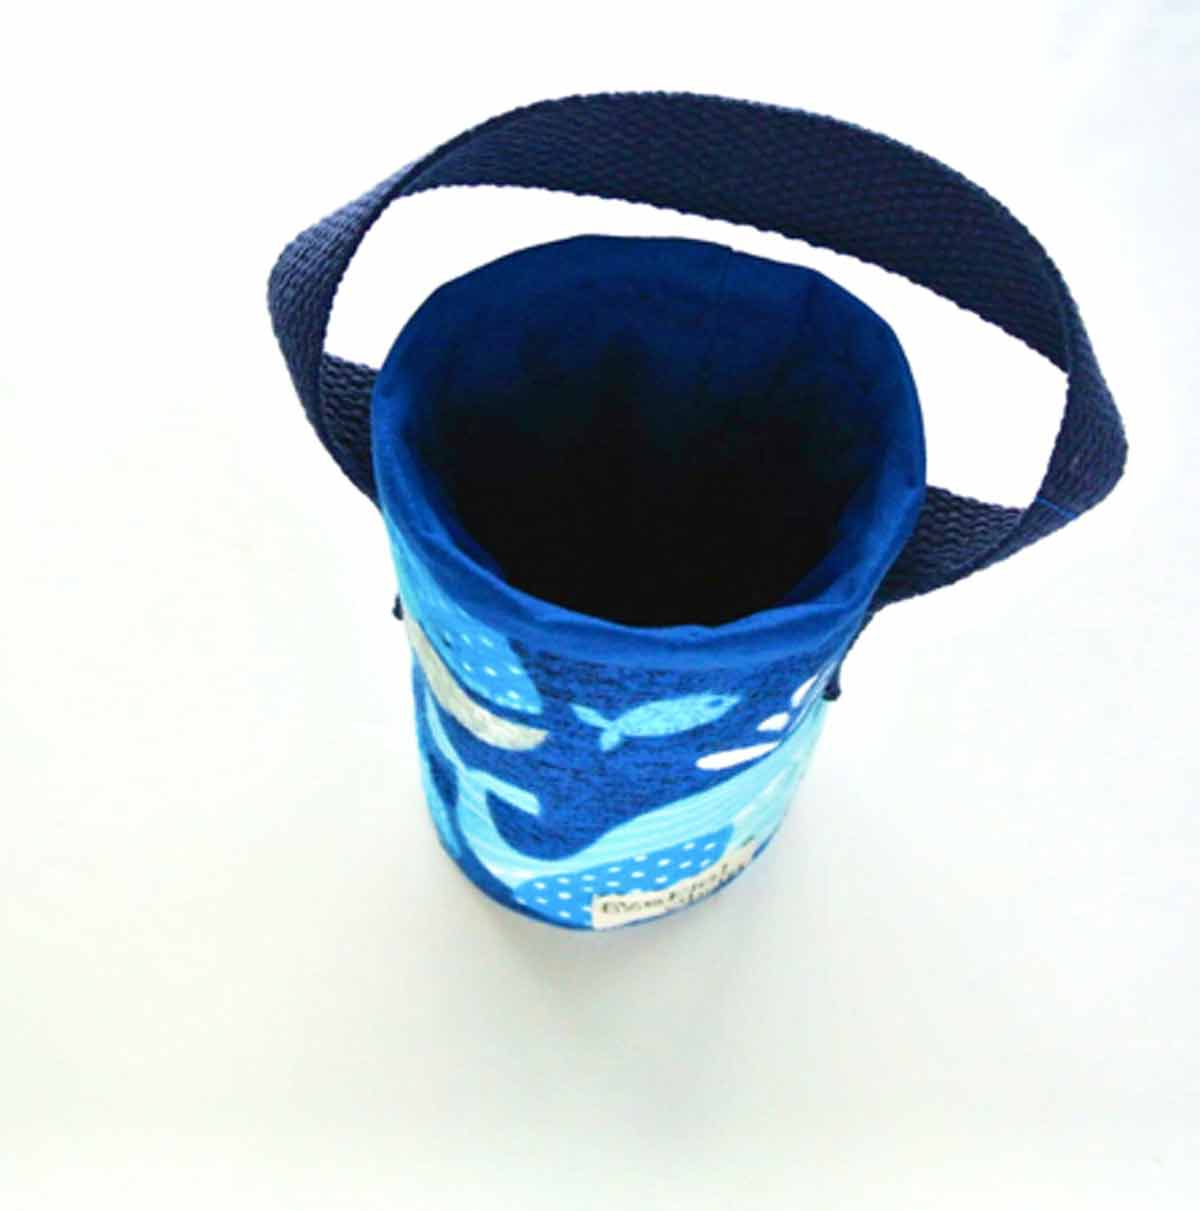 Finished top view of DIY Insulated Water Bottle Holder Bag Carrier with Small Name Tag on Side